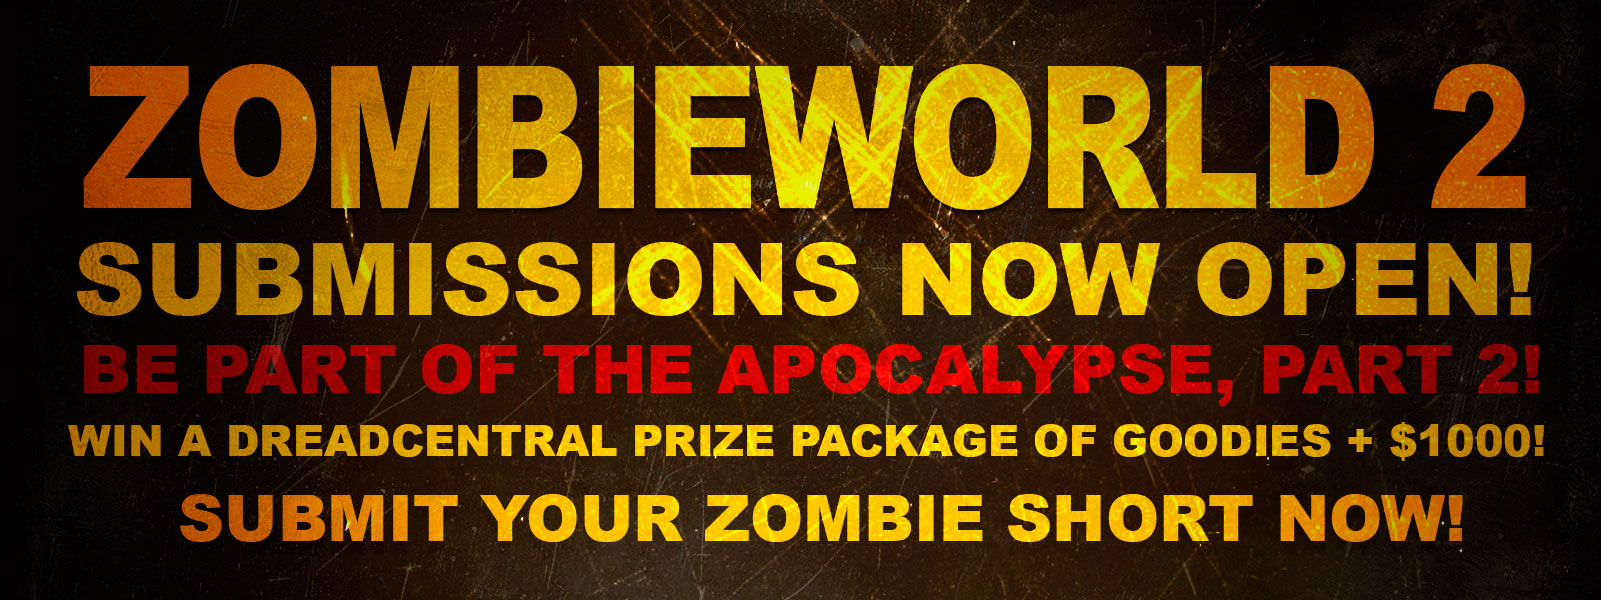 Zombieworld 2 - Official Zombieworld 2 Contest! Call for Entries!